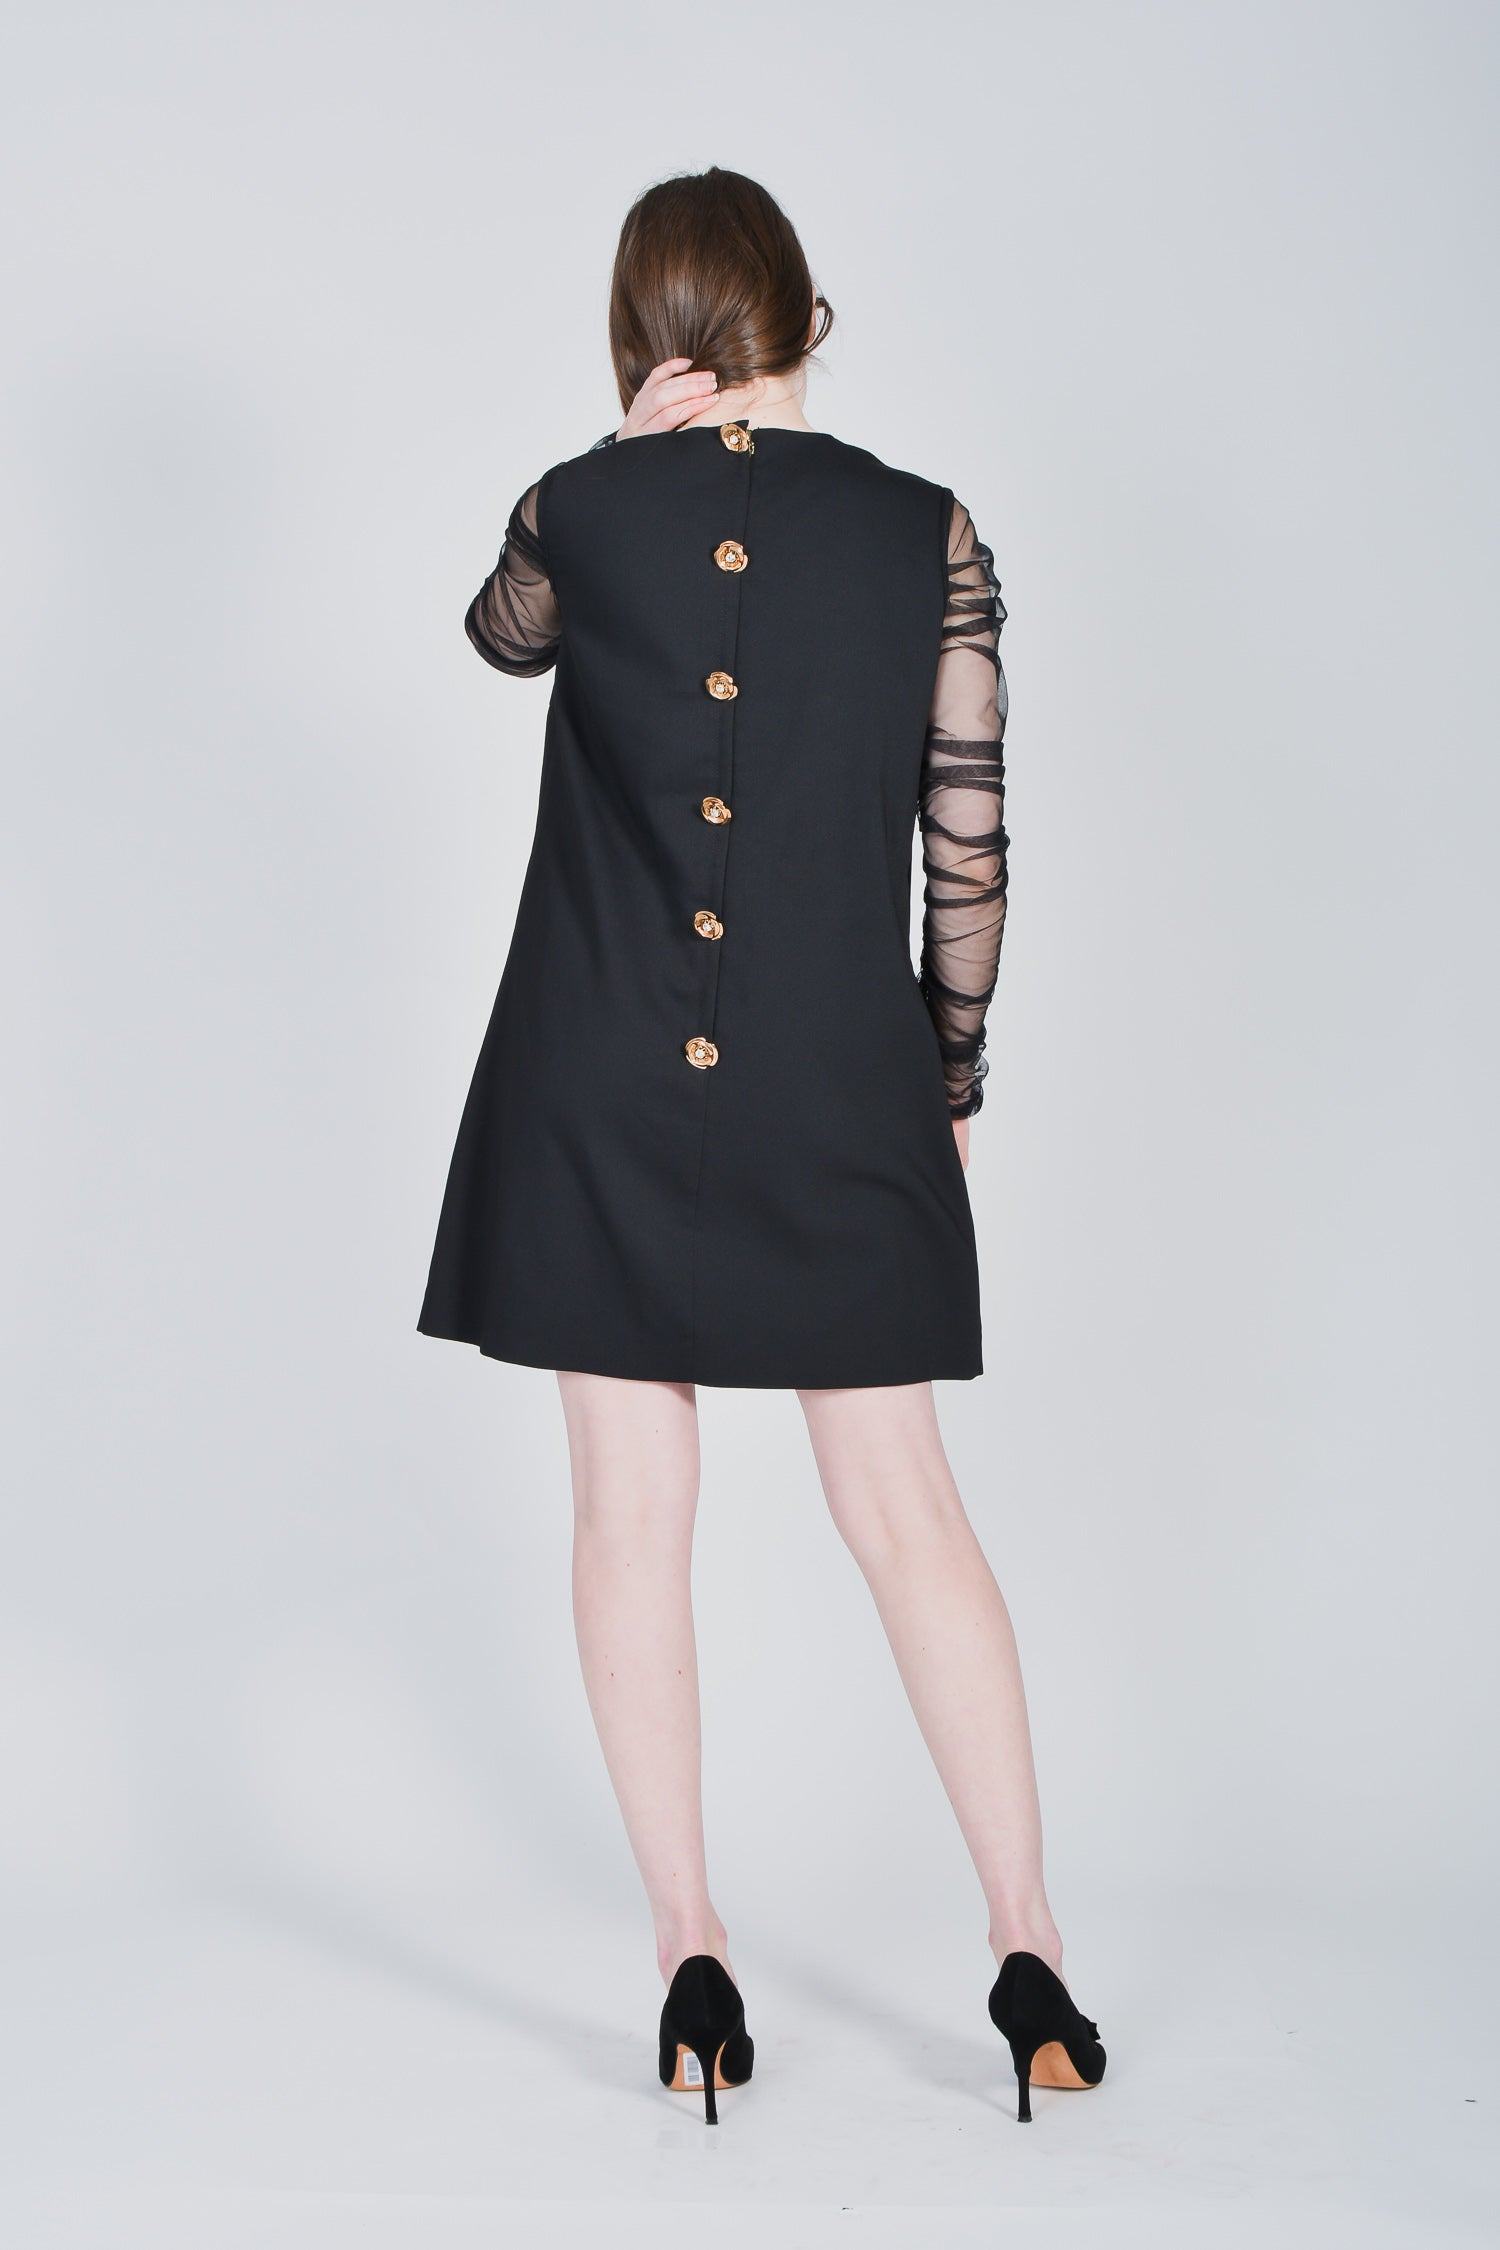 Moonaa Liisaa Black L/S Dress with Gold Embelishments Size L